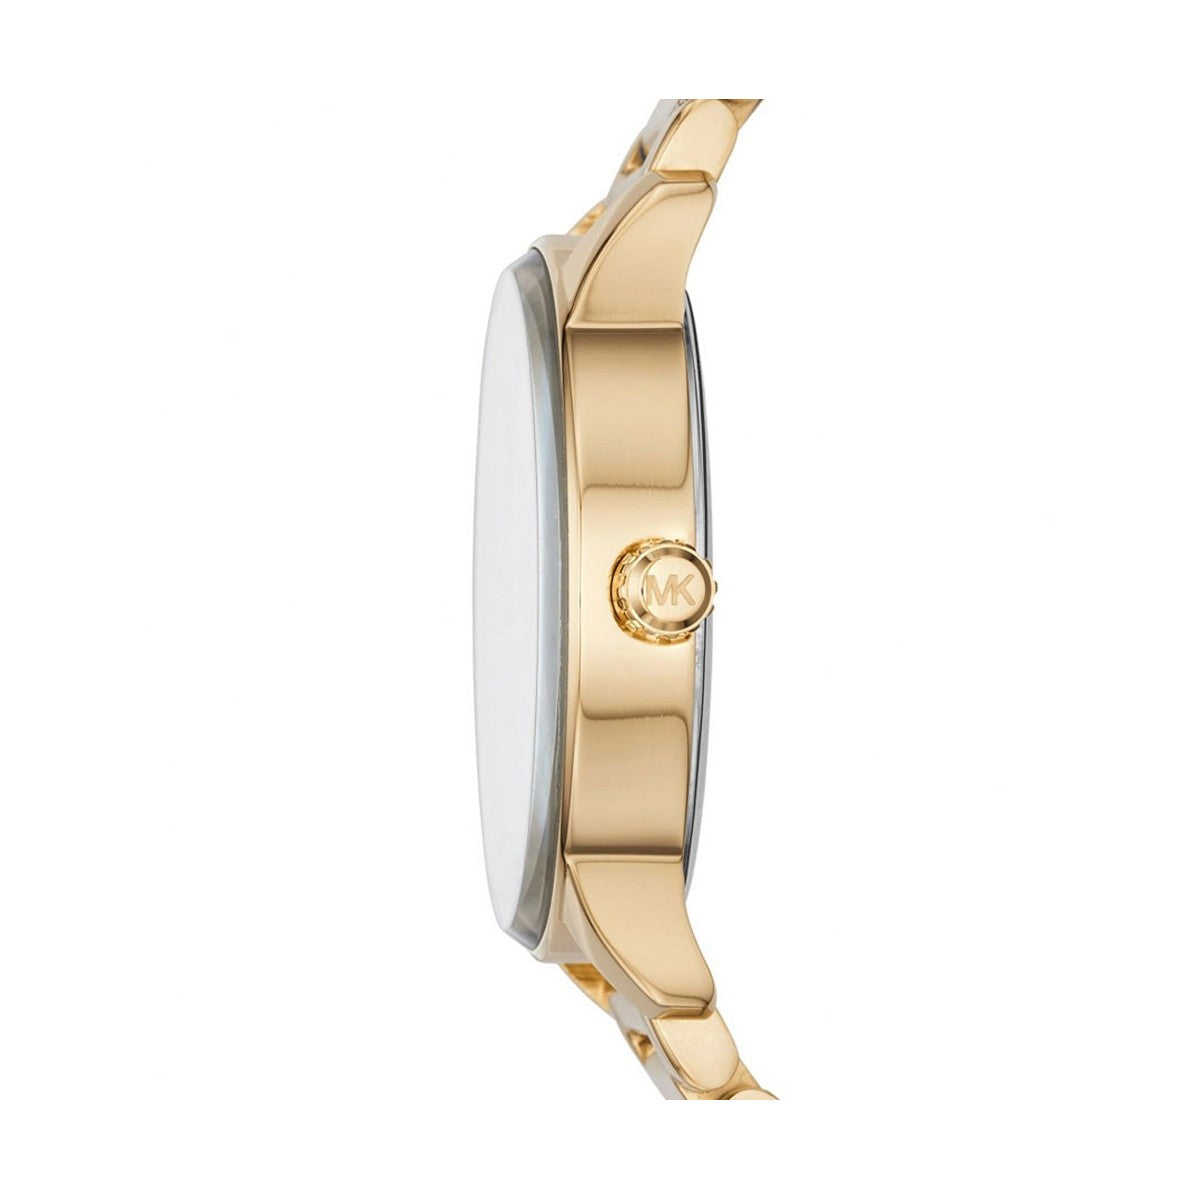 9586c6e40041 Michael Kors Ladies Kinley Pav Gold Tone Watch MK6209